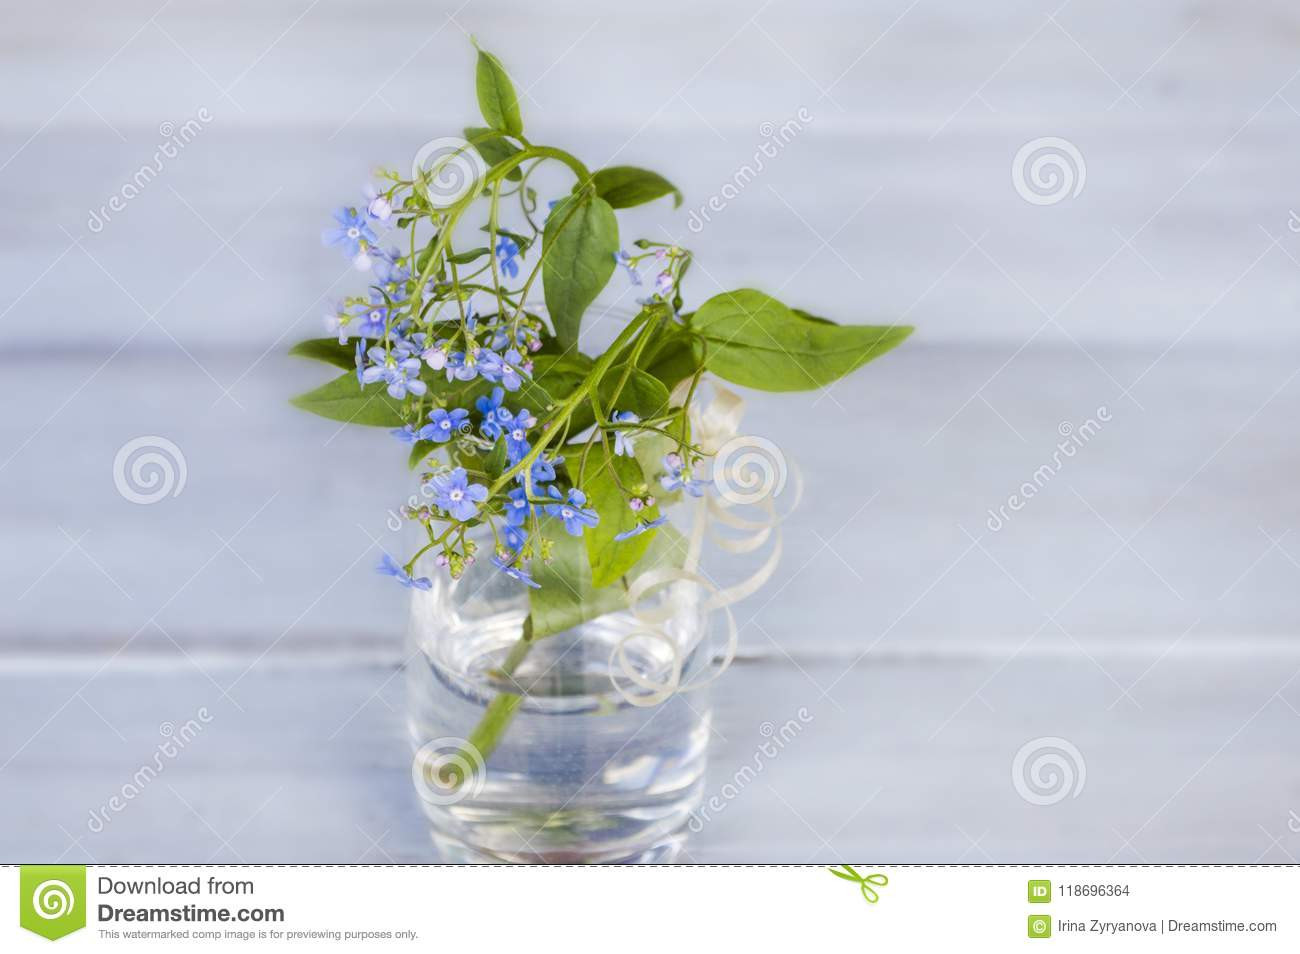 colored glass vases cheap of blue forget me nots in a transparent vase on a wooden background throughout blue forget me nots in a transparent vase on a wooden background